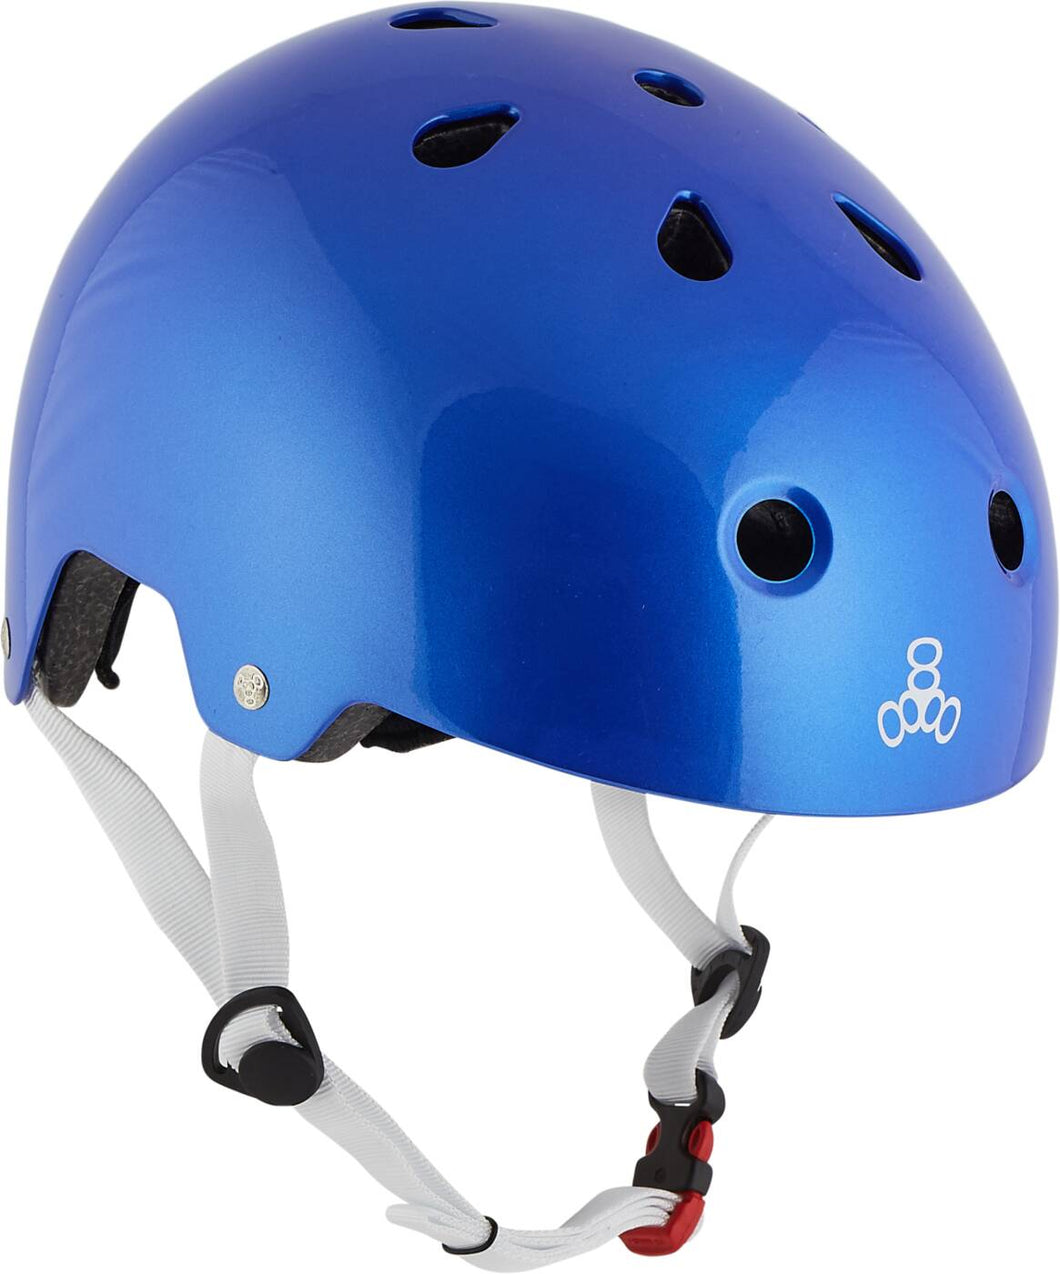 Triple Eight Brainsaver Skate Helm - Metallic Blue